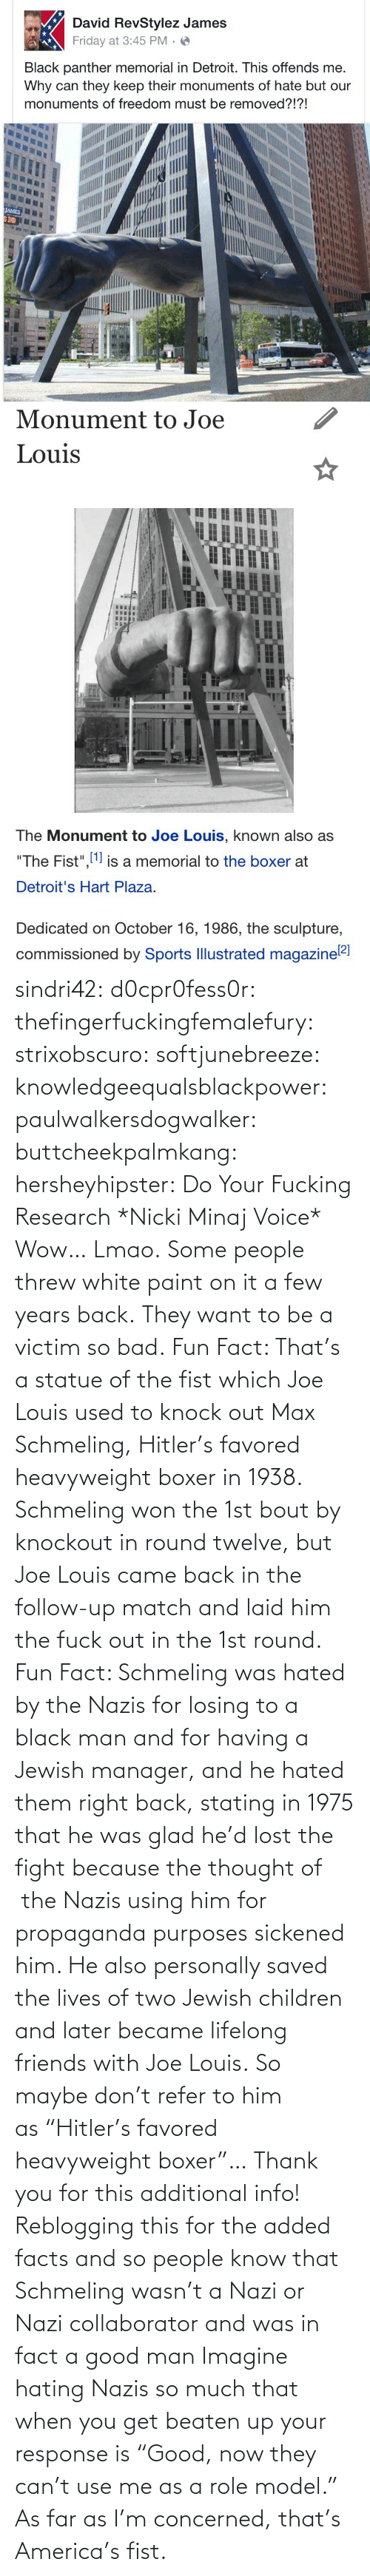 "joe: sindri42:  d0cpr0fess0r:  thefingerfuckingfemalefury:  strixobscuro:  softjunebreeze:  knowledgeequalsblackpower:  paulwalkersdogwalker:   buttcheekpalmkang:   hersheyhipster:  Do Your Fucking Research *Nicki Minaj Voice*    Wow… Lmao.   Some people threw white paint on it a few years back.   They want to be a victim so bad.  Fun Fact: That's a statue of the fist which Joe Louis used to knock out Max Schmeling, Hitler's favored heavyweight boxer in 1938. Schmeling won the 1st bout by knockout in round twelve, but Joe Louis came back in the follow-up match and laid him the fuck out in the 1st round.  Fun Fact: Schmeling was hated by the Nazis for losing to a black man and for having a Jewish manager, and he hated them right back, stating in 1975 that he was glad he'd lost the fight because the thought of  the Nazis using him for propaganda purposes sickened him. He also personally saved the lives of two Jewish children and later became lifelong friends with Joe Louis. So maybe don't refer to him as ""Hitler's favored heavyweight boxer""…  Thank you for this additional info! Reblogging this for the added facts and so people know that Schmeling wasn't a Nazi or Nazi collaborator and was in fact a good man   Imagine hating Nazis so much that when you get beaten up your response is ""Good, now they can't use me as a role model.""  As far as I'm concerned, that's America's fist."